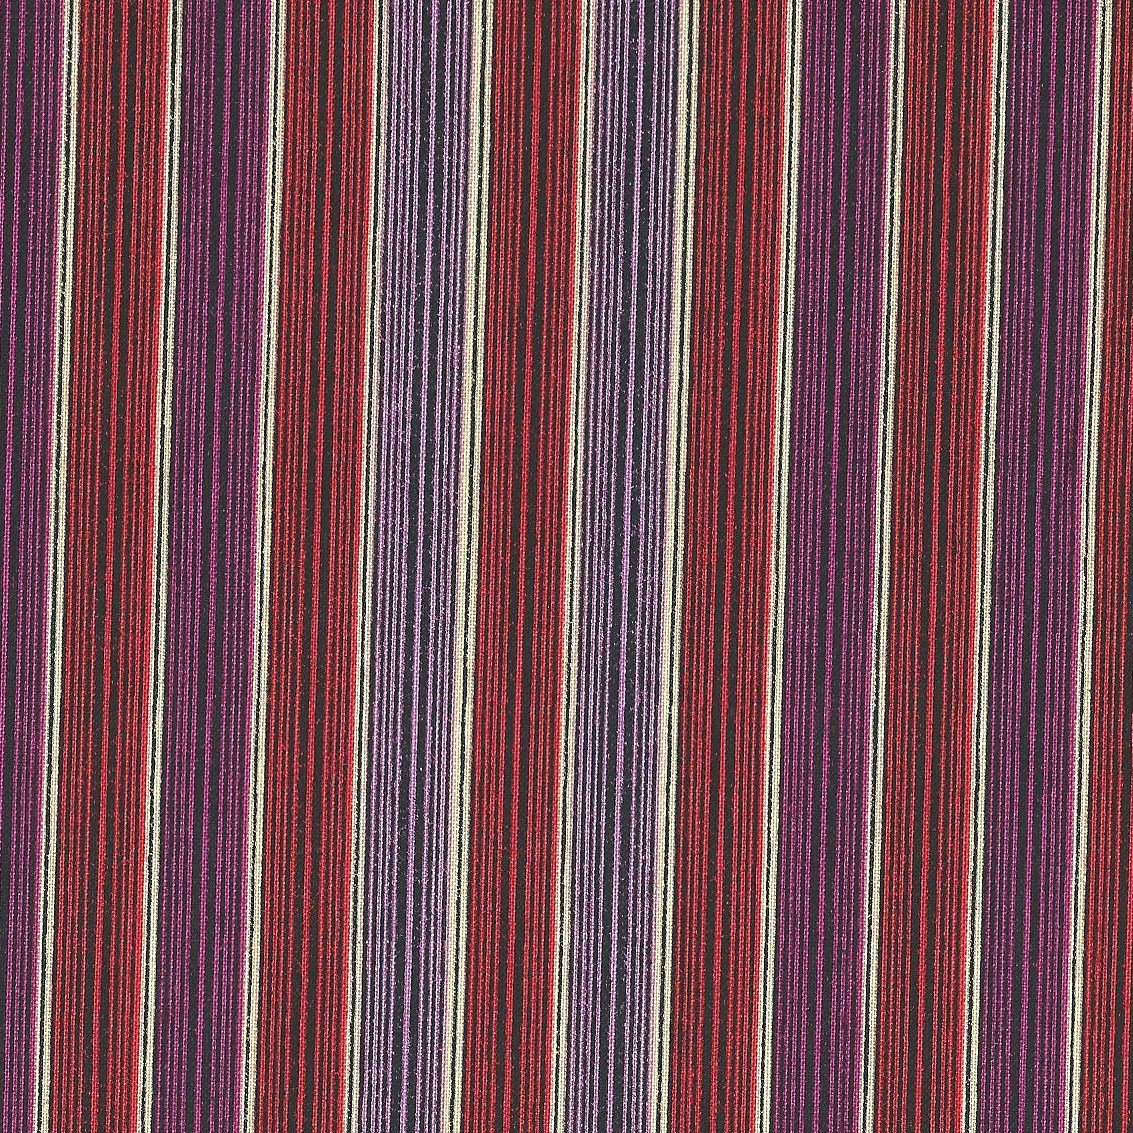 PWDS033 Shirt Stripe in Red